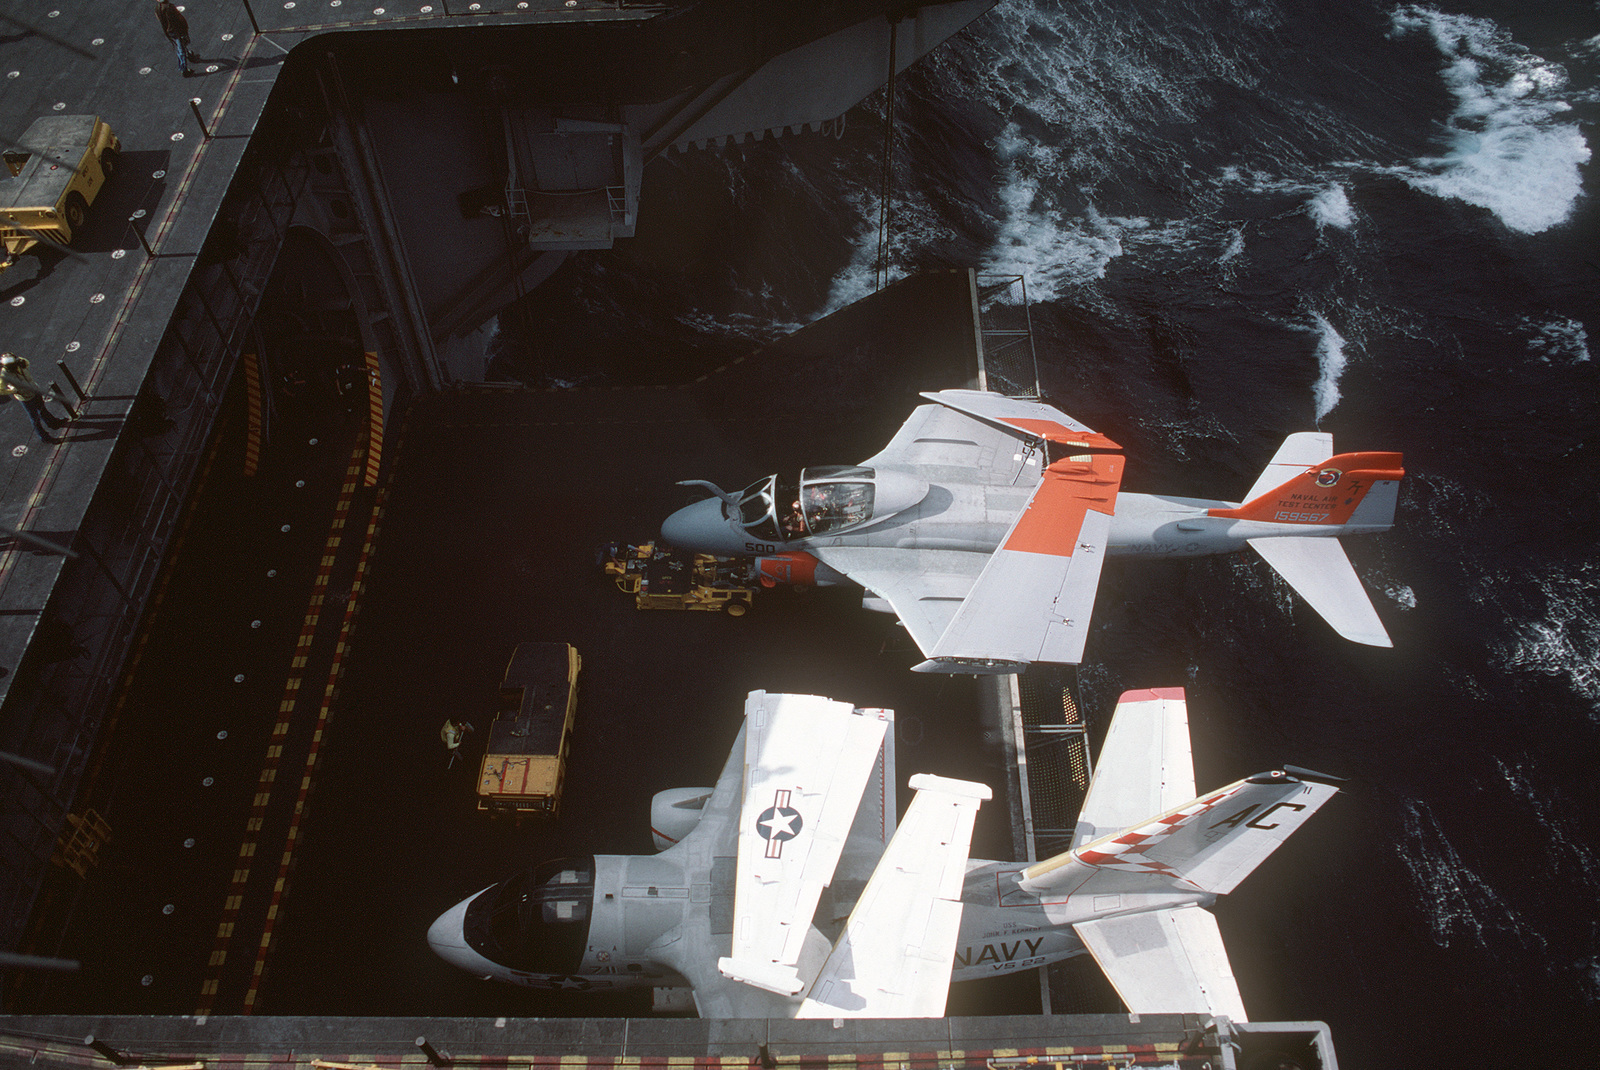 An S-3A Viking aircraft of Air Anti-submarine Squadron 22 (VS-22) and an A-6E Intruder aircraft from the Naval Air Test Center are lowered on an elevator aboard the aircraft carrier USS JOHN F. KENNEDY (CV 67)